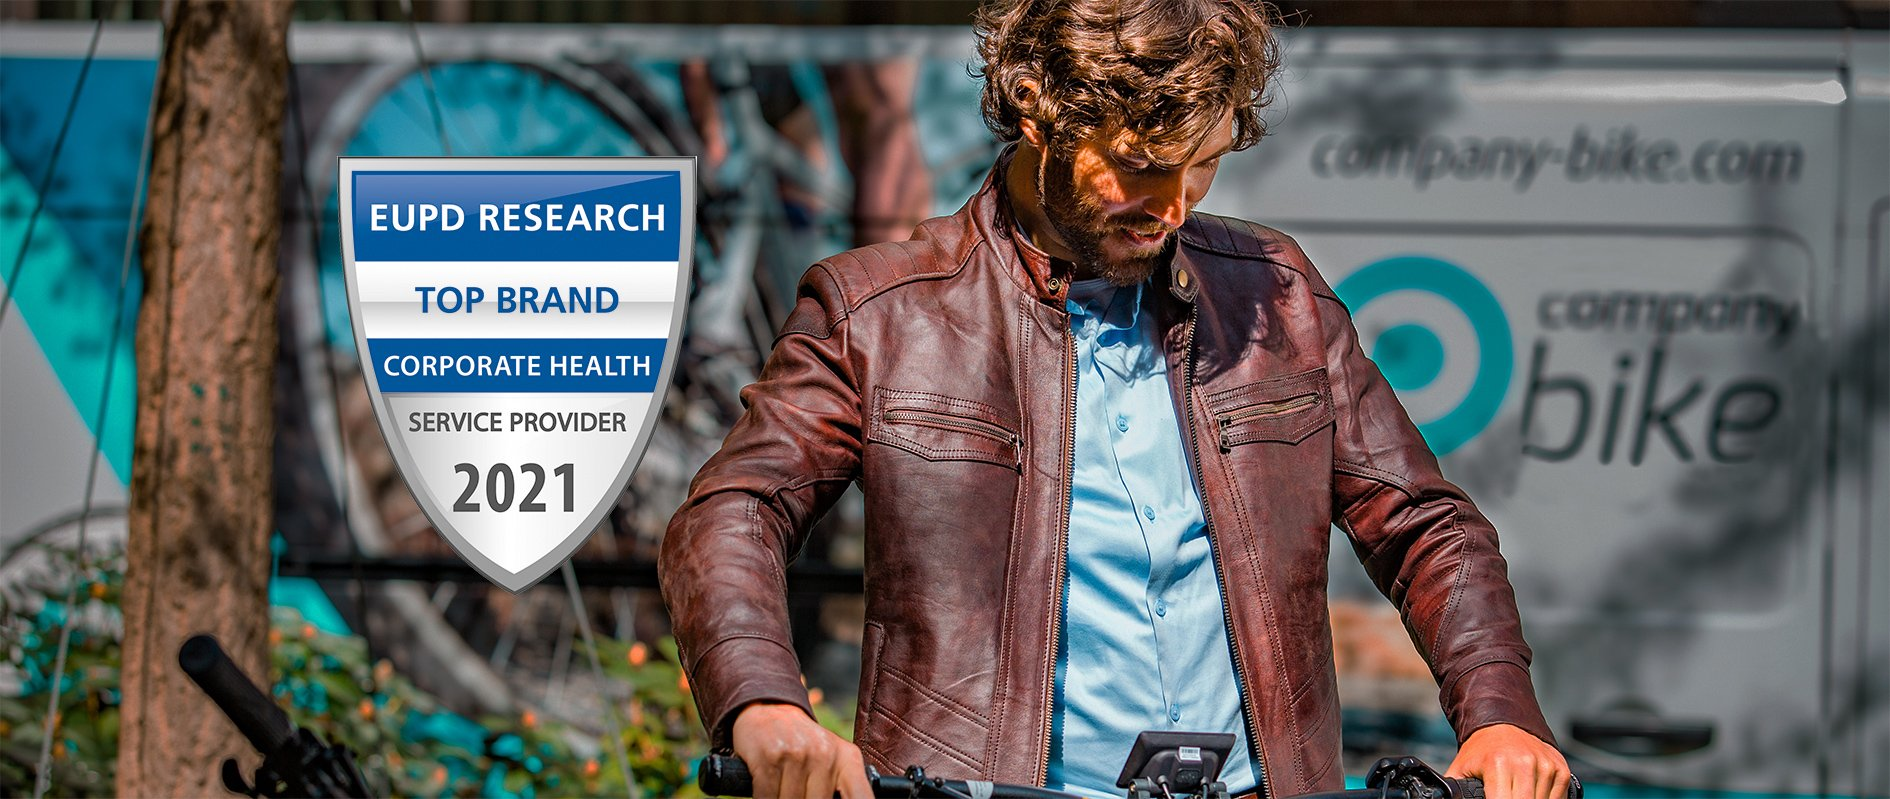 Company Bike wird Top Brand Corporate Health